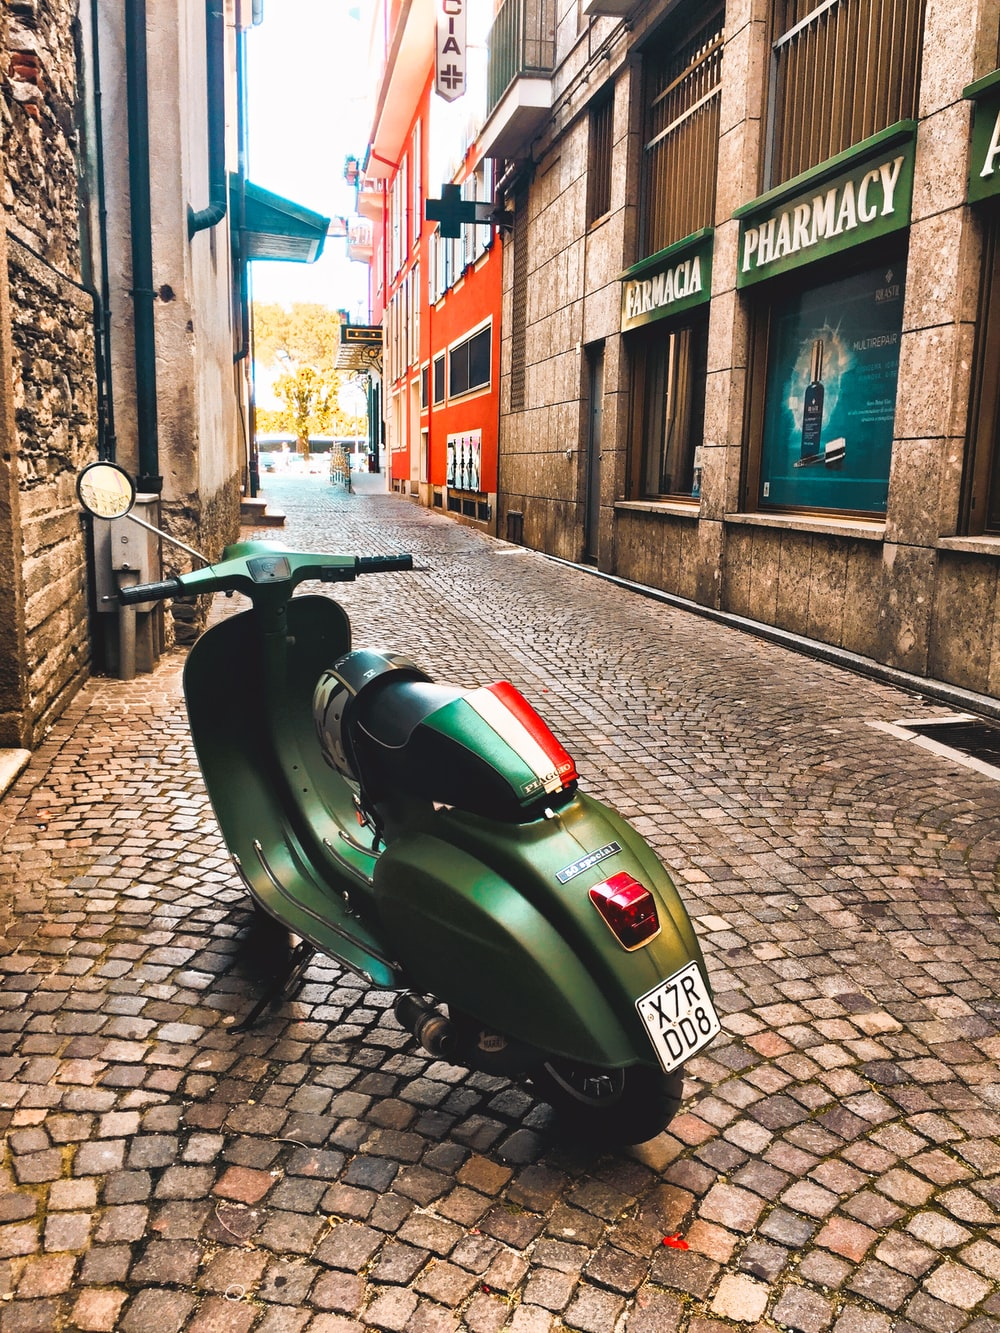 green motor scooter parked beside building